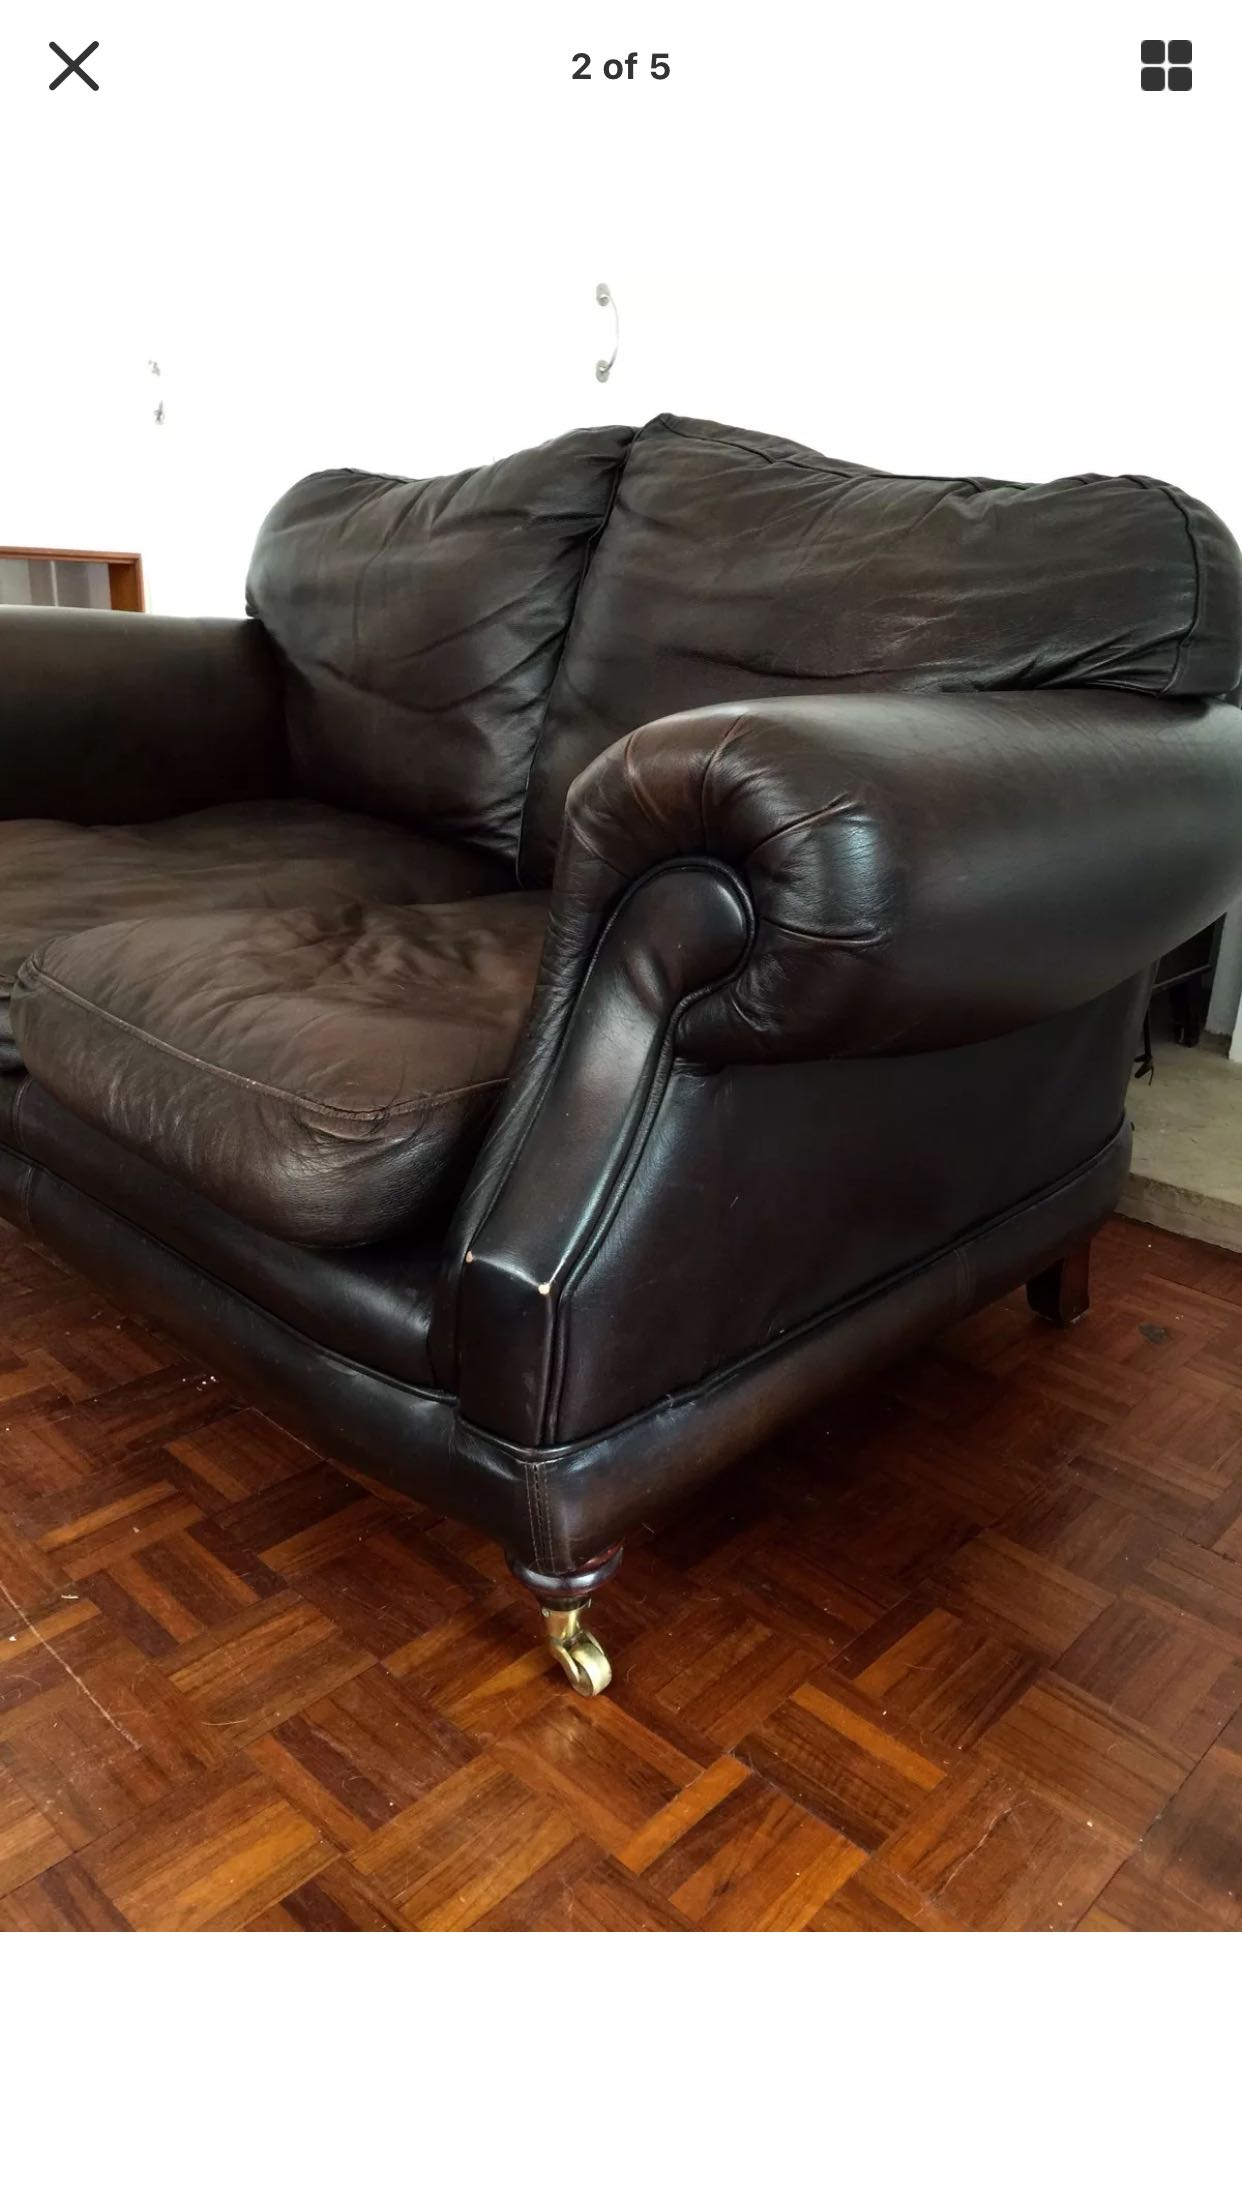 Thomas Lloyd leather two seater Chesterfield style sofa For Sale in Bromsgrove, Worcestershire